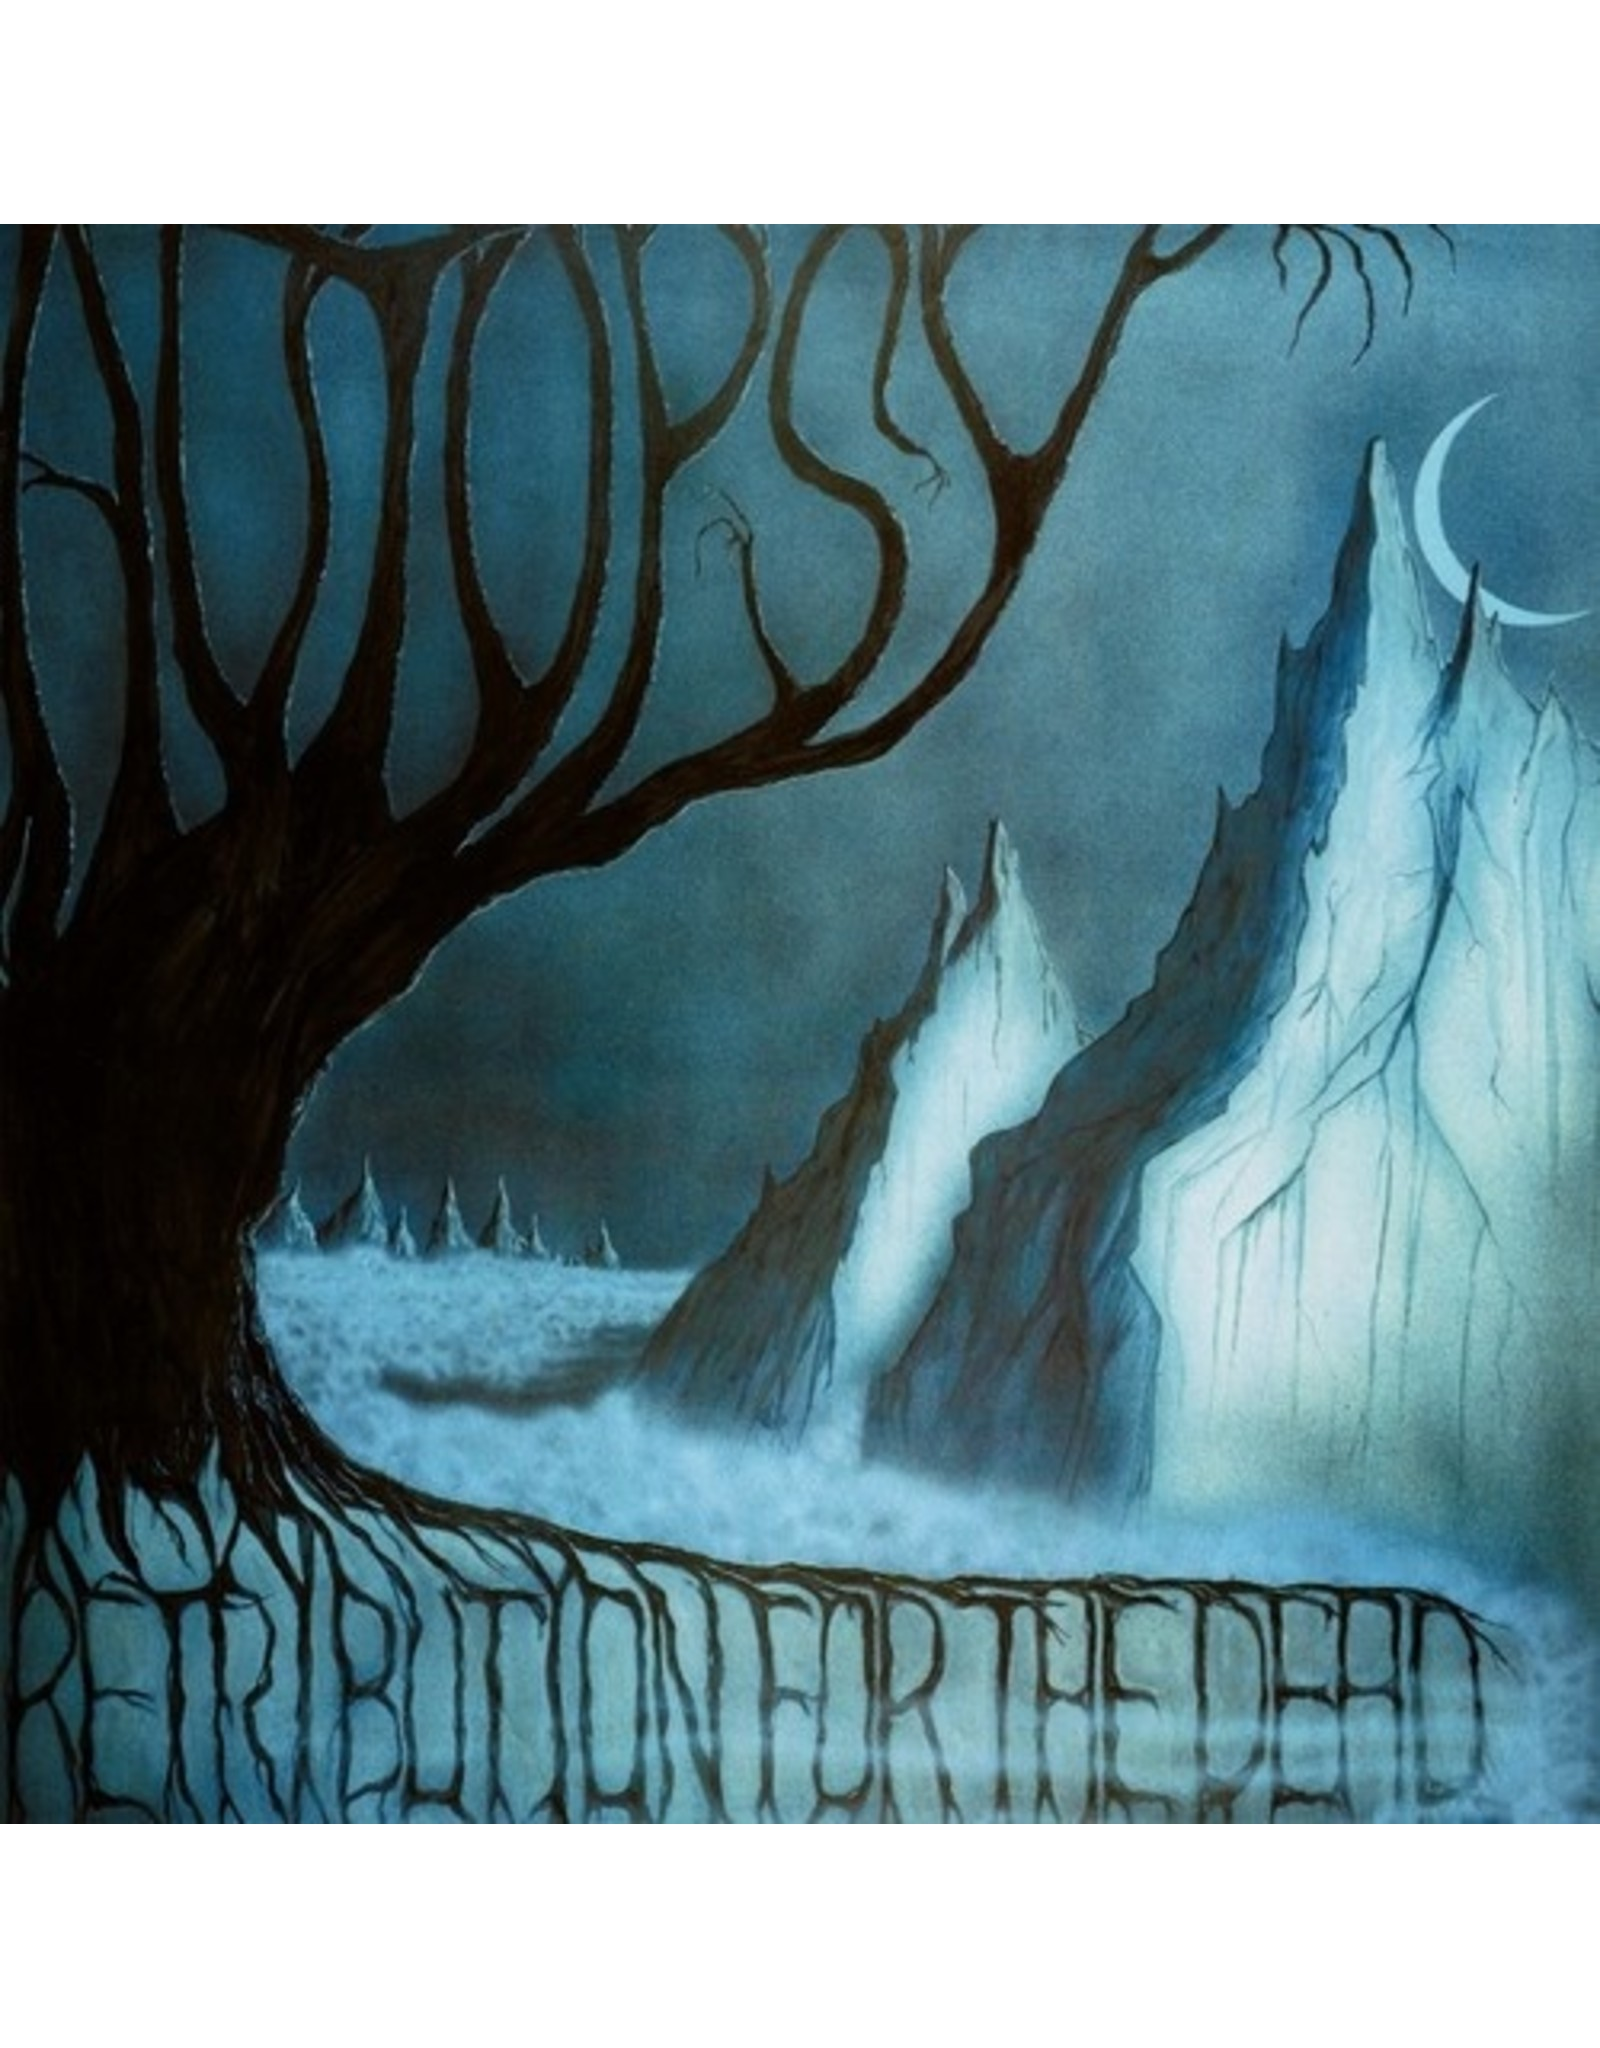 New Vinyl Autopsy - Retribution For The Dead LP